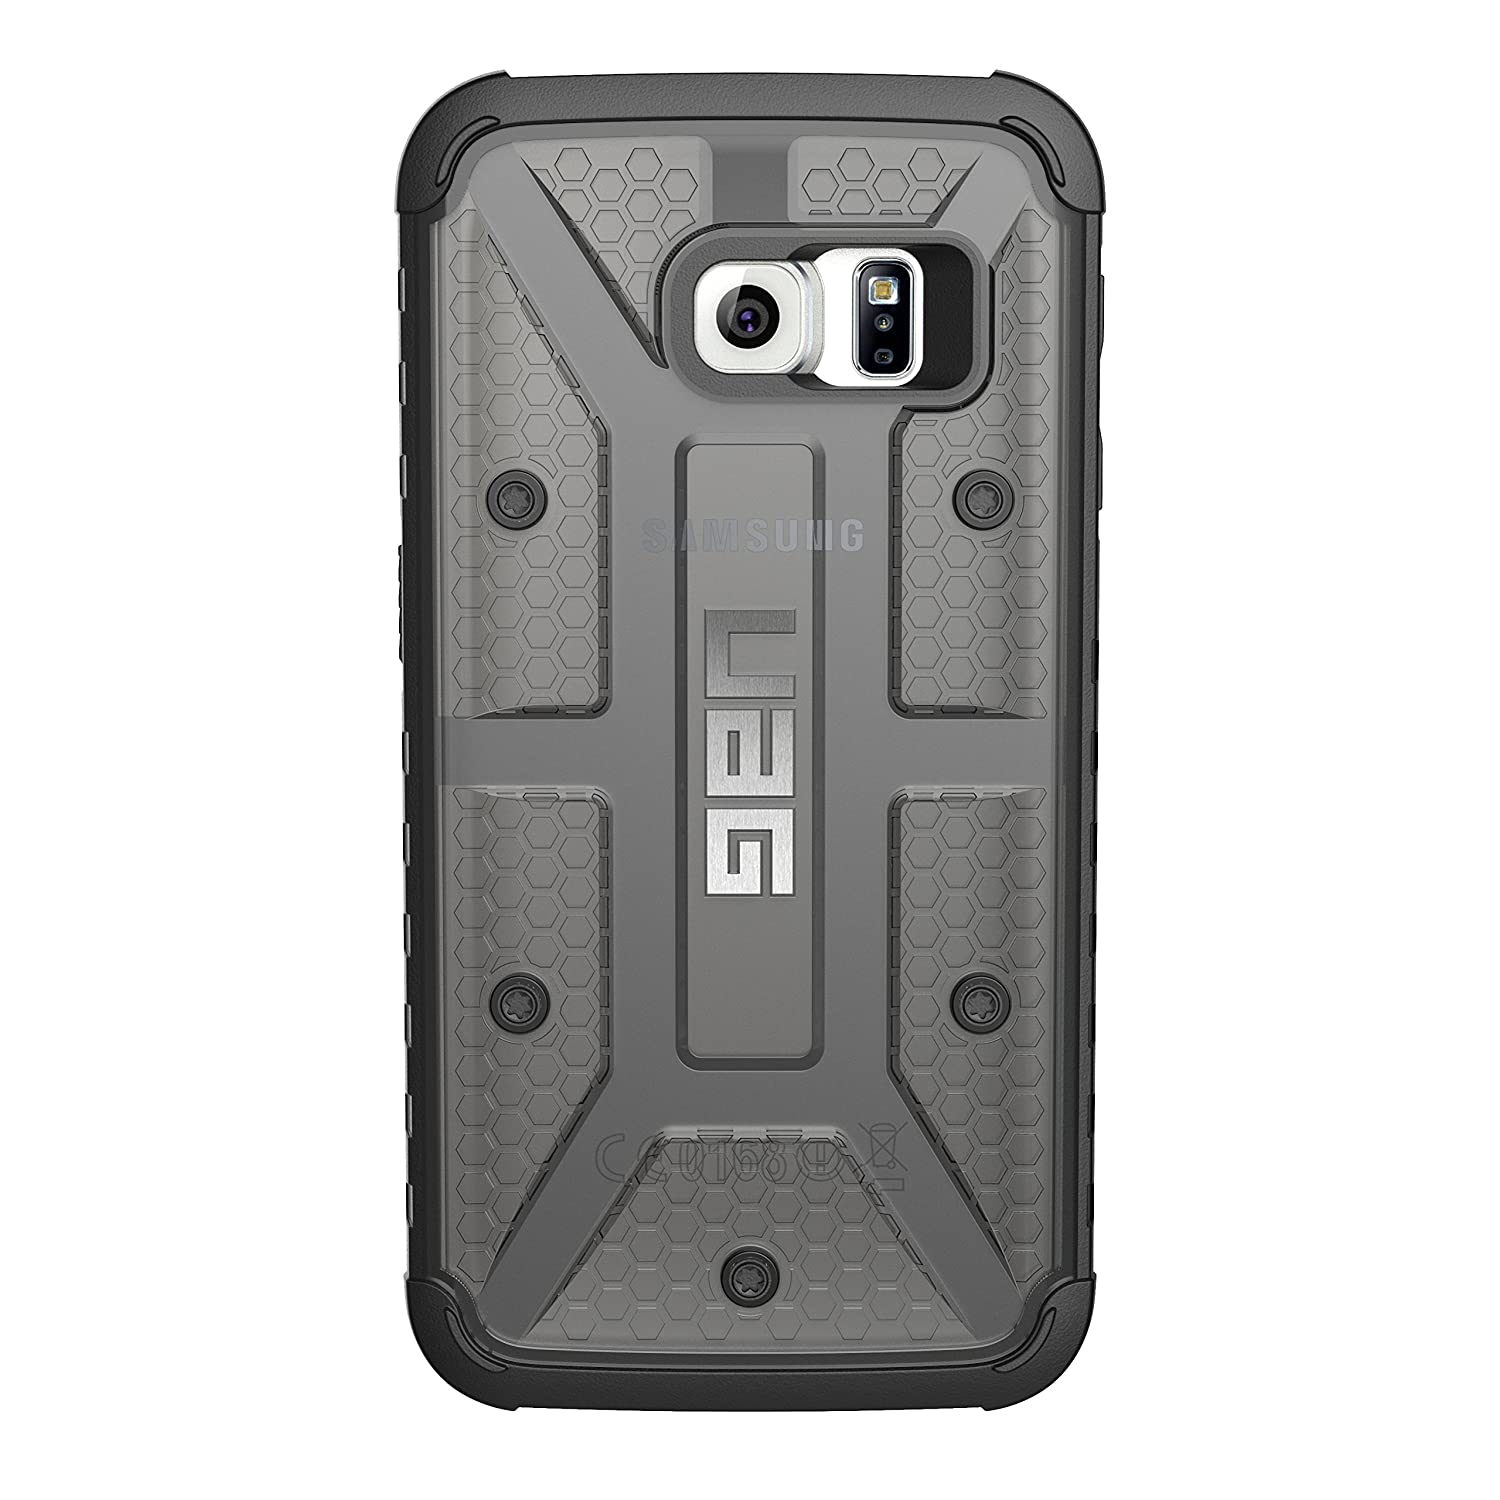 Galaxy s6 cases shop samsung cases online uag urban armor gear - Amazon Com Uag Samsung Galaxy S6 Edge 5 1 Inch Screen Feather Light Composite Ash Military Drop Tested Phone Case Cell Phones Accessories